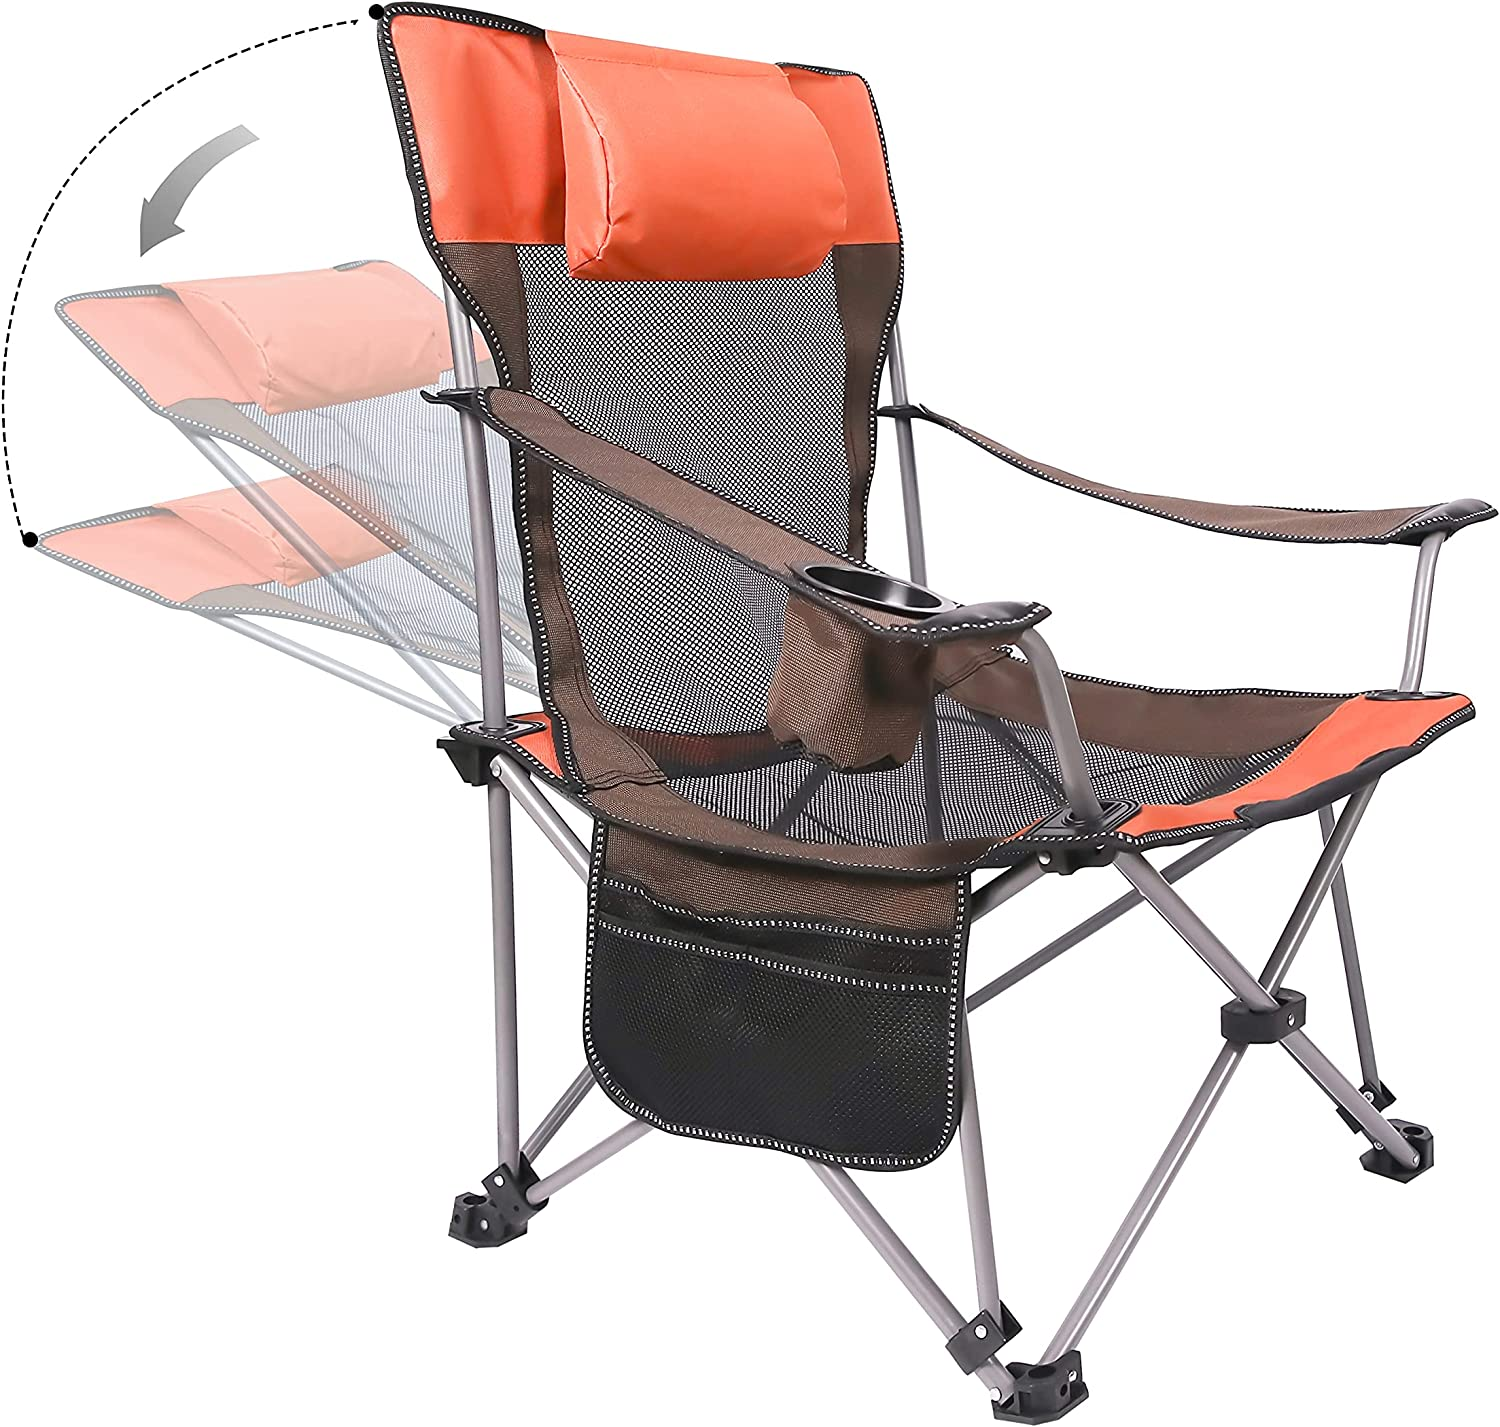 Phiroop Folding Camping Chair Adjustable Lounge Recliner Portable Oversized Steel Frame Collapsible Lawn Outdoor Chair with Cup Holder & Pillow (Desert Orange)